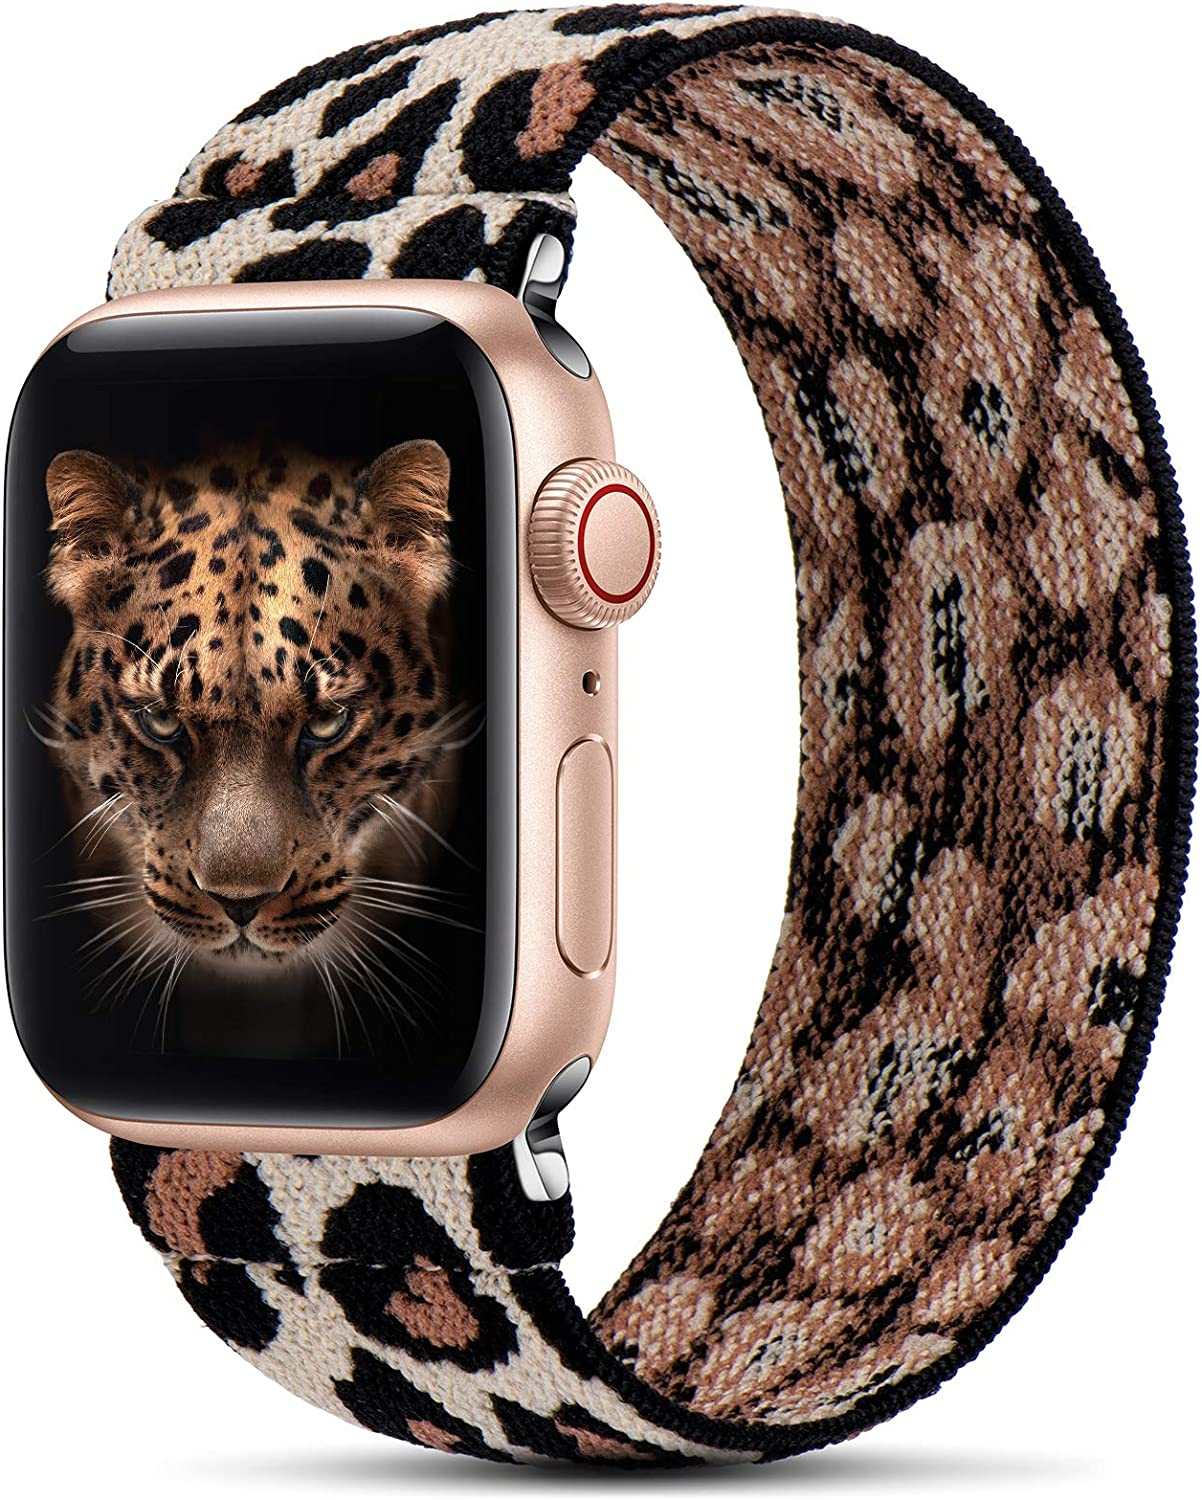 GeekSpark Elastic Band Compatible for Apple Watch Bands 38mm 40mm 42mm 44mm Stretchy Loop Strap Replacement Wristband for iwatch Series 6/SE/5/4/3/2/1 (Leopard S/M 38mm/40mm)